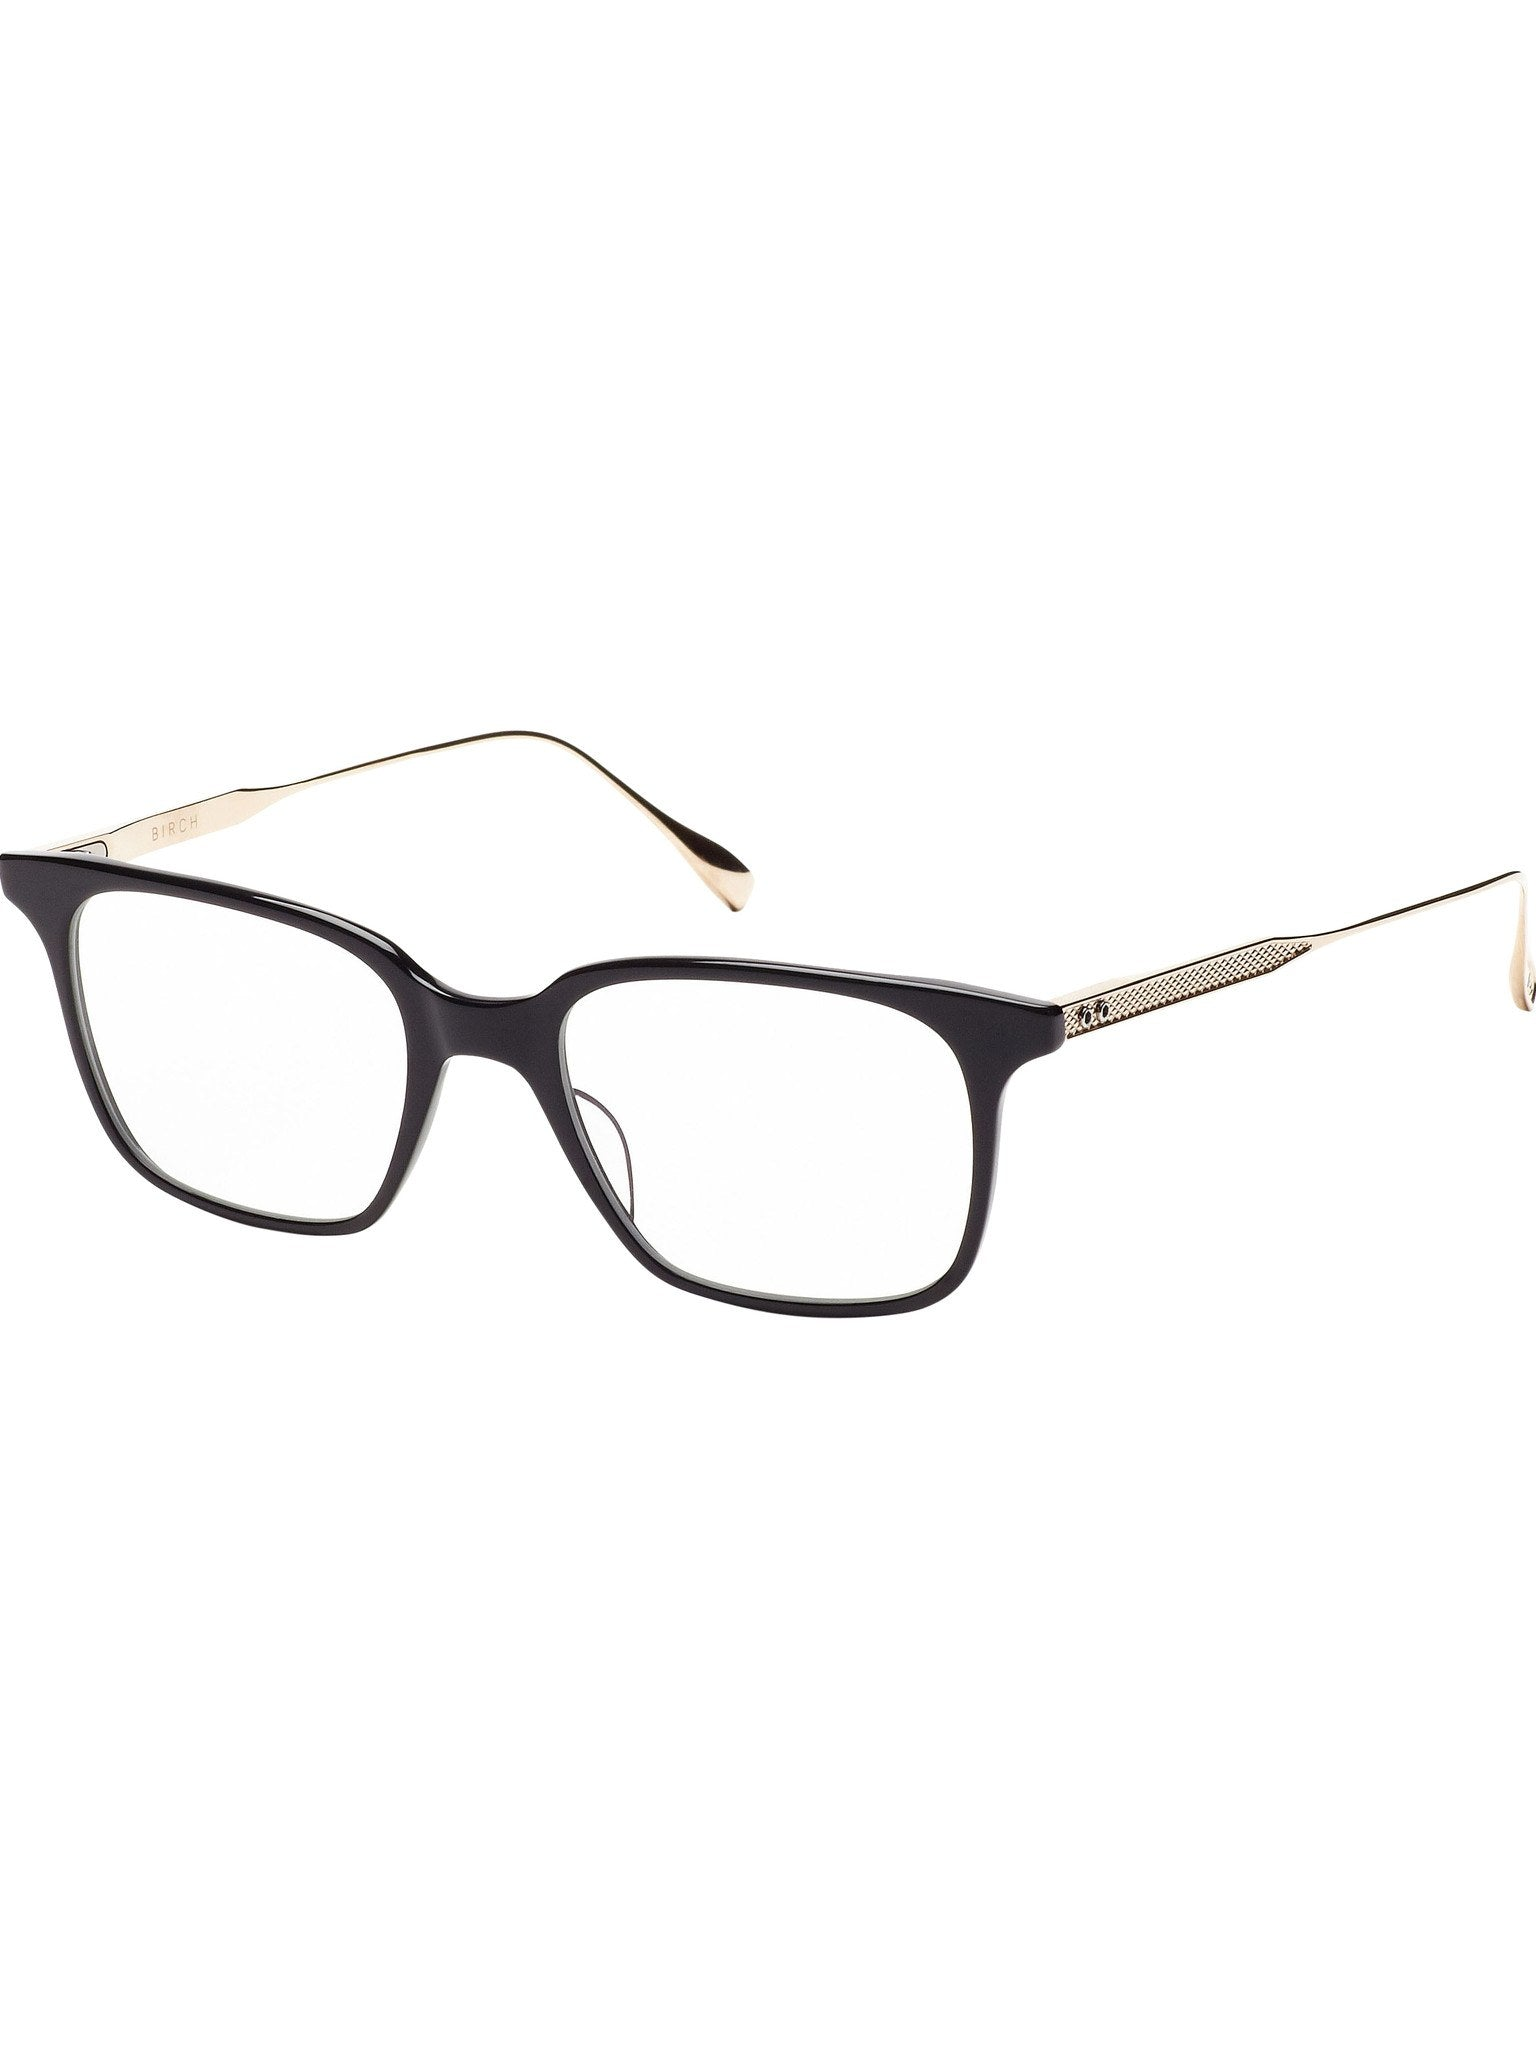 Optical Frame - Dita Birch DRX-2074-A Glasses